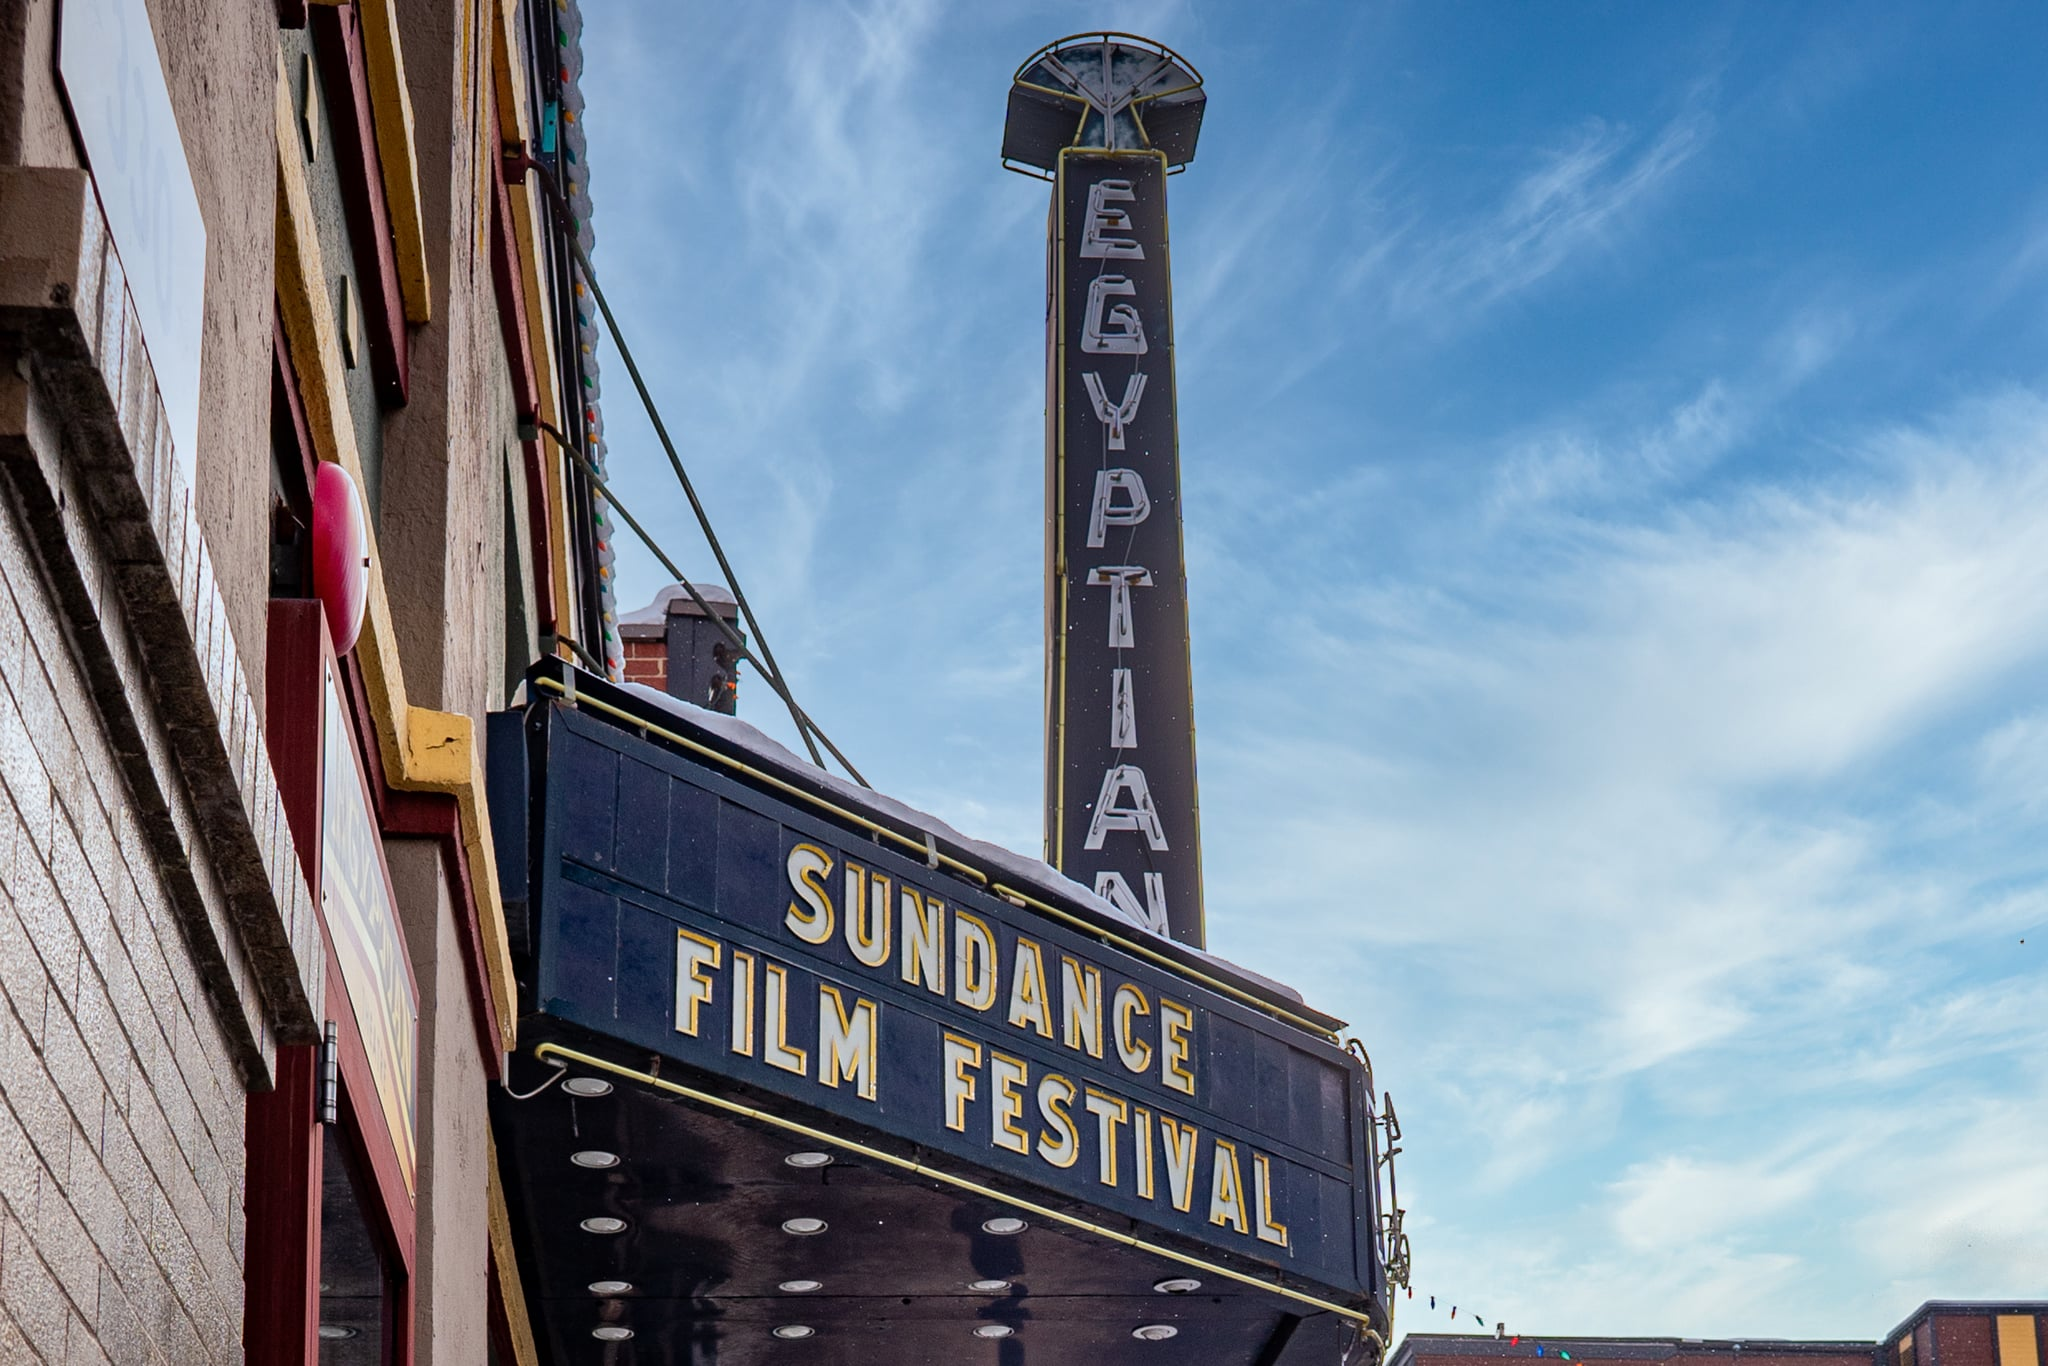 PARK CITY, UTAH - JANUARY 27: General view of the Egyptian Theatre on Main Street on January 27, 2021 in Park City, Utah. The Sundance Film Festival is going virtual this year due to the COVID-19 pandemic. (Photo by Mark Sagliocco/Getty Images)